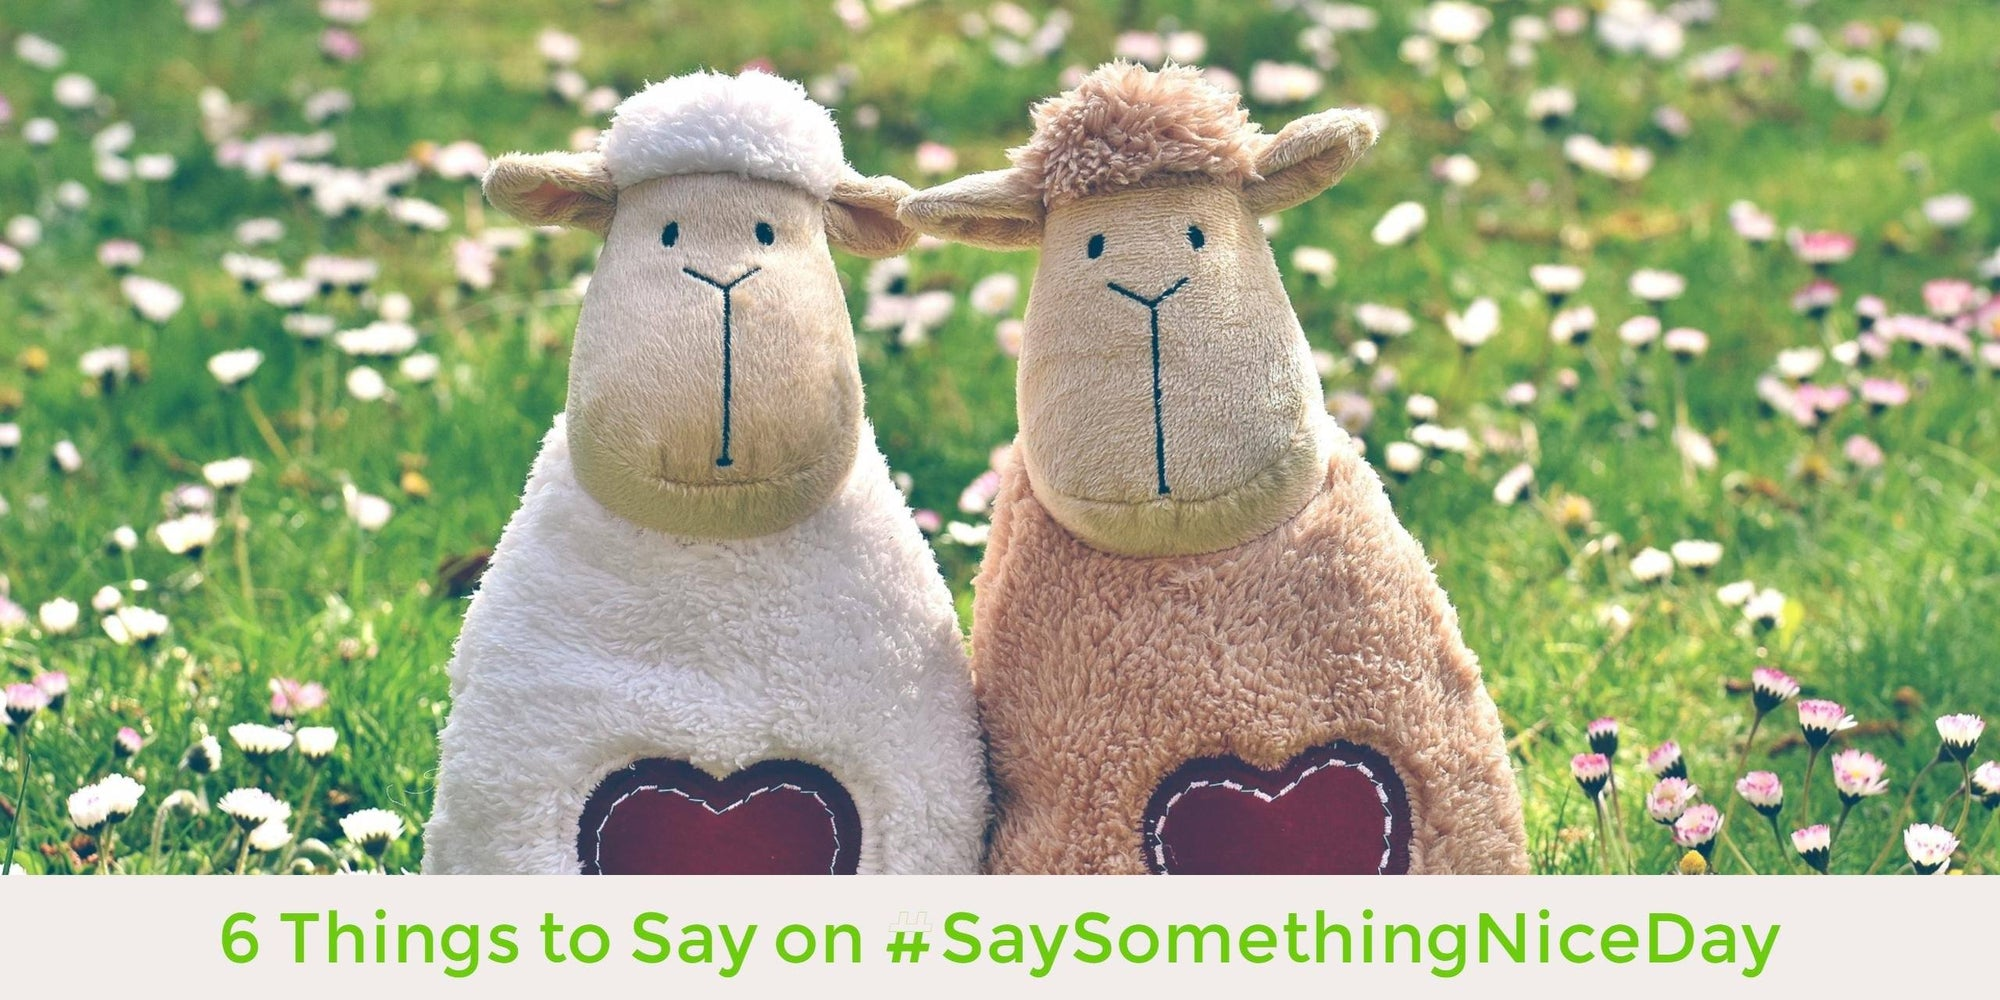 6 Things to Say on #SaySomethingNiceDay